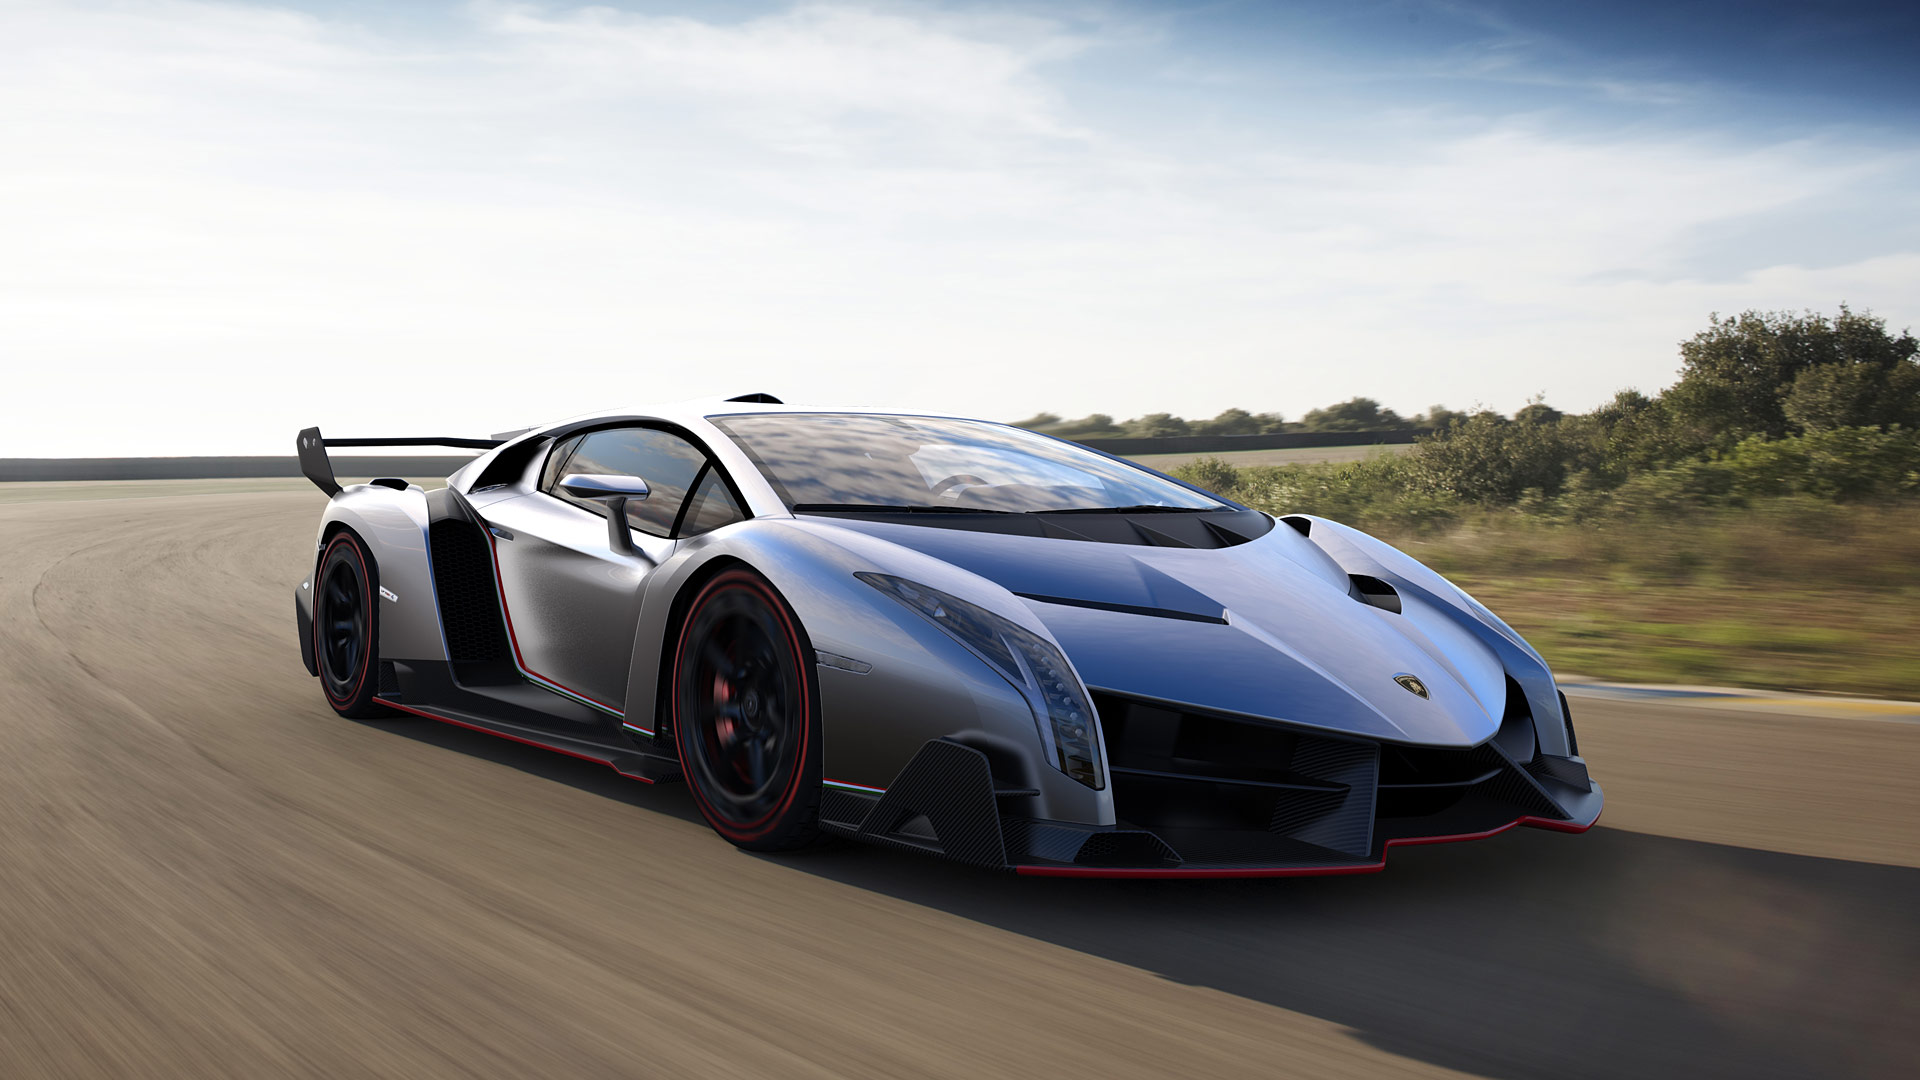 Lamborghini Veneno 1080p-HD wallpapers